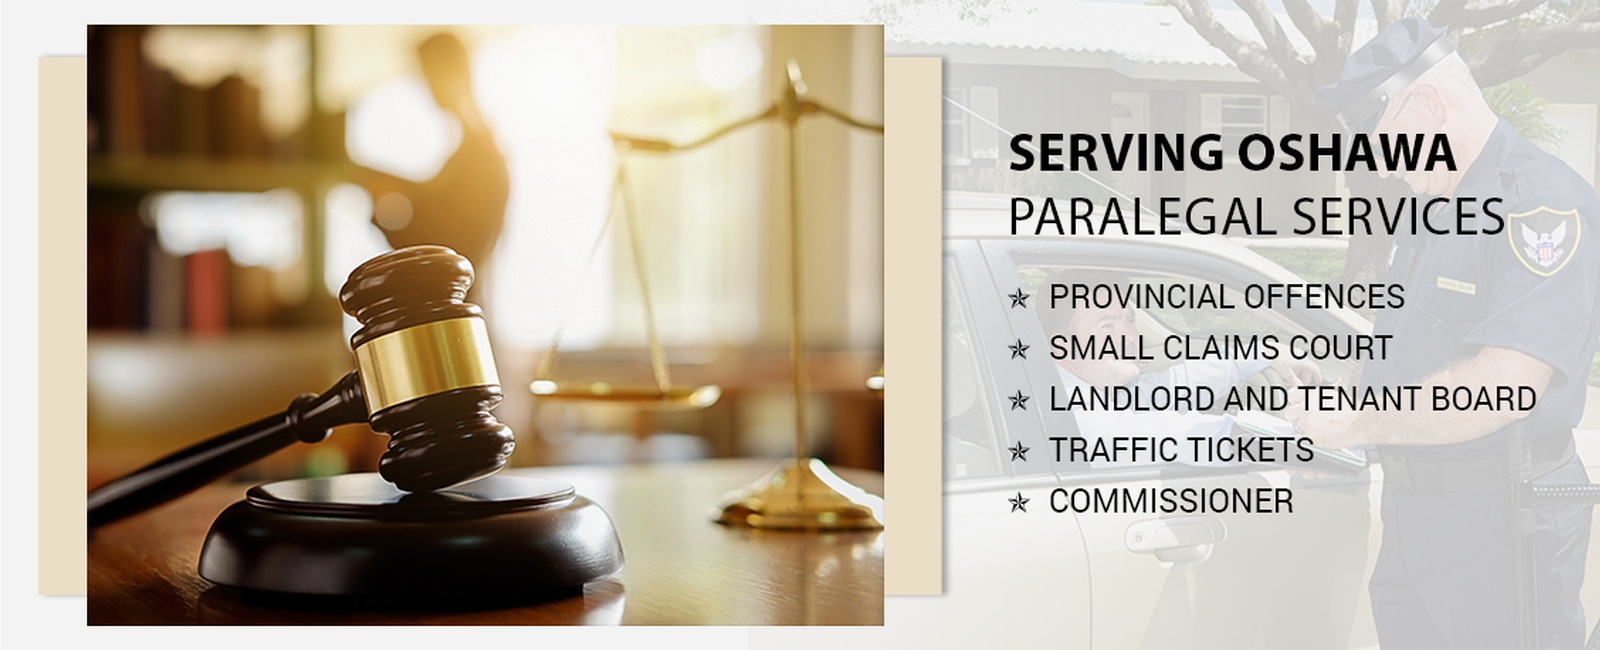 Paralegal services in Oshawa